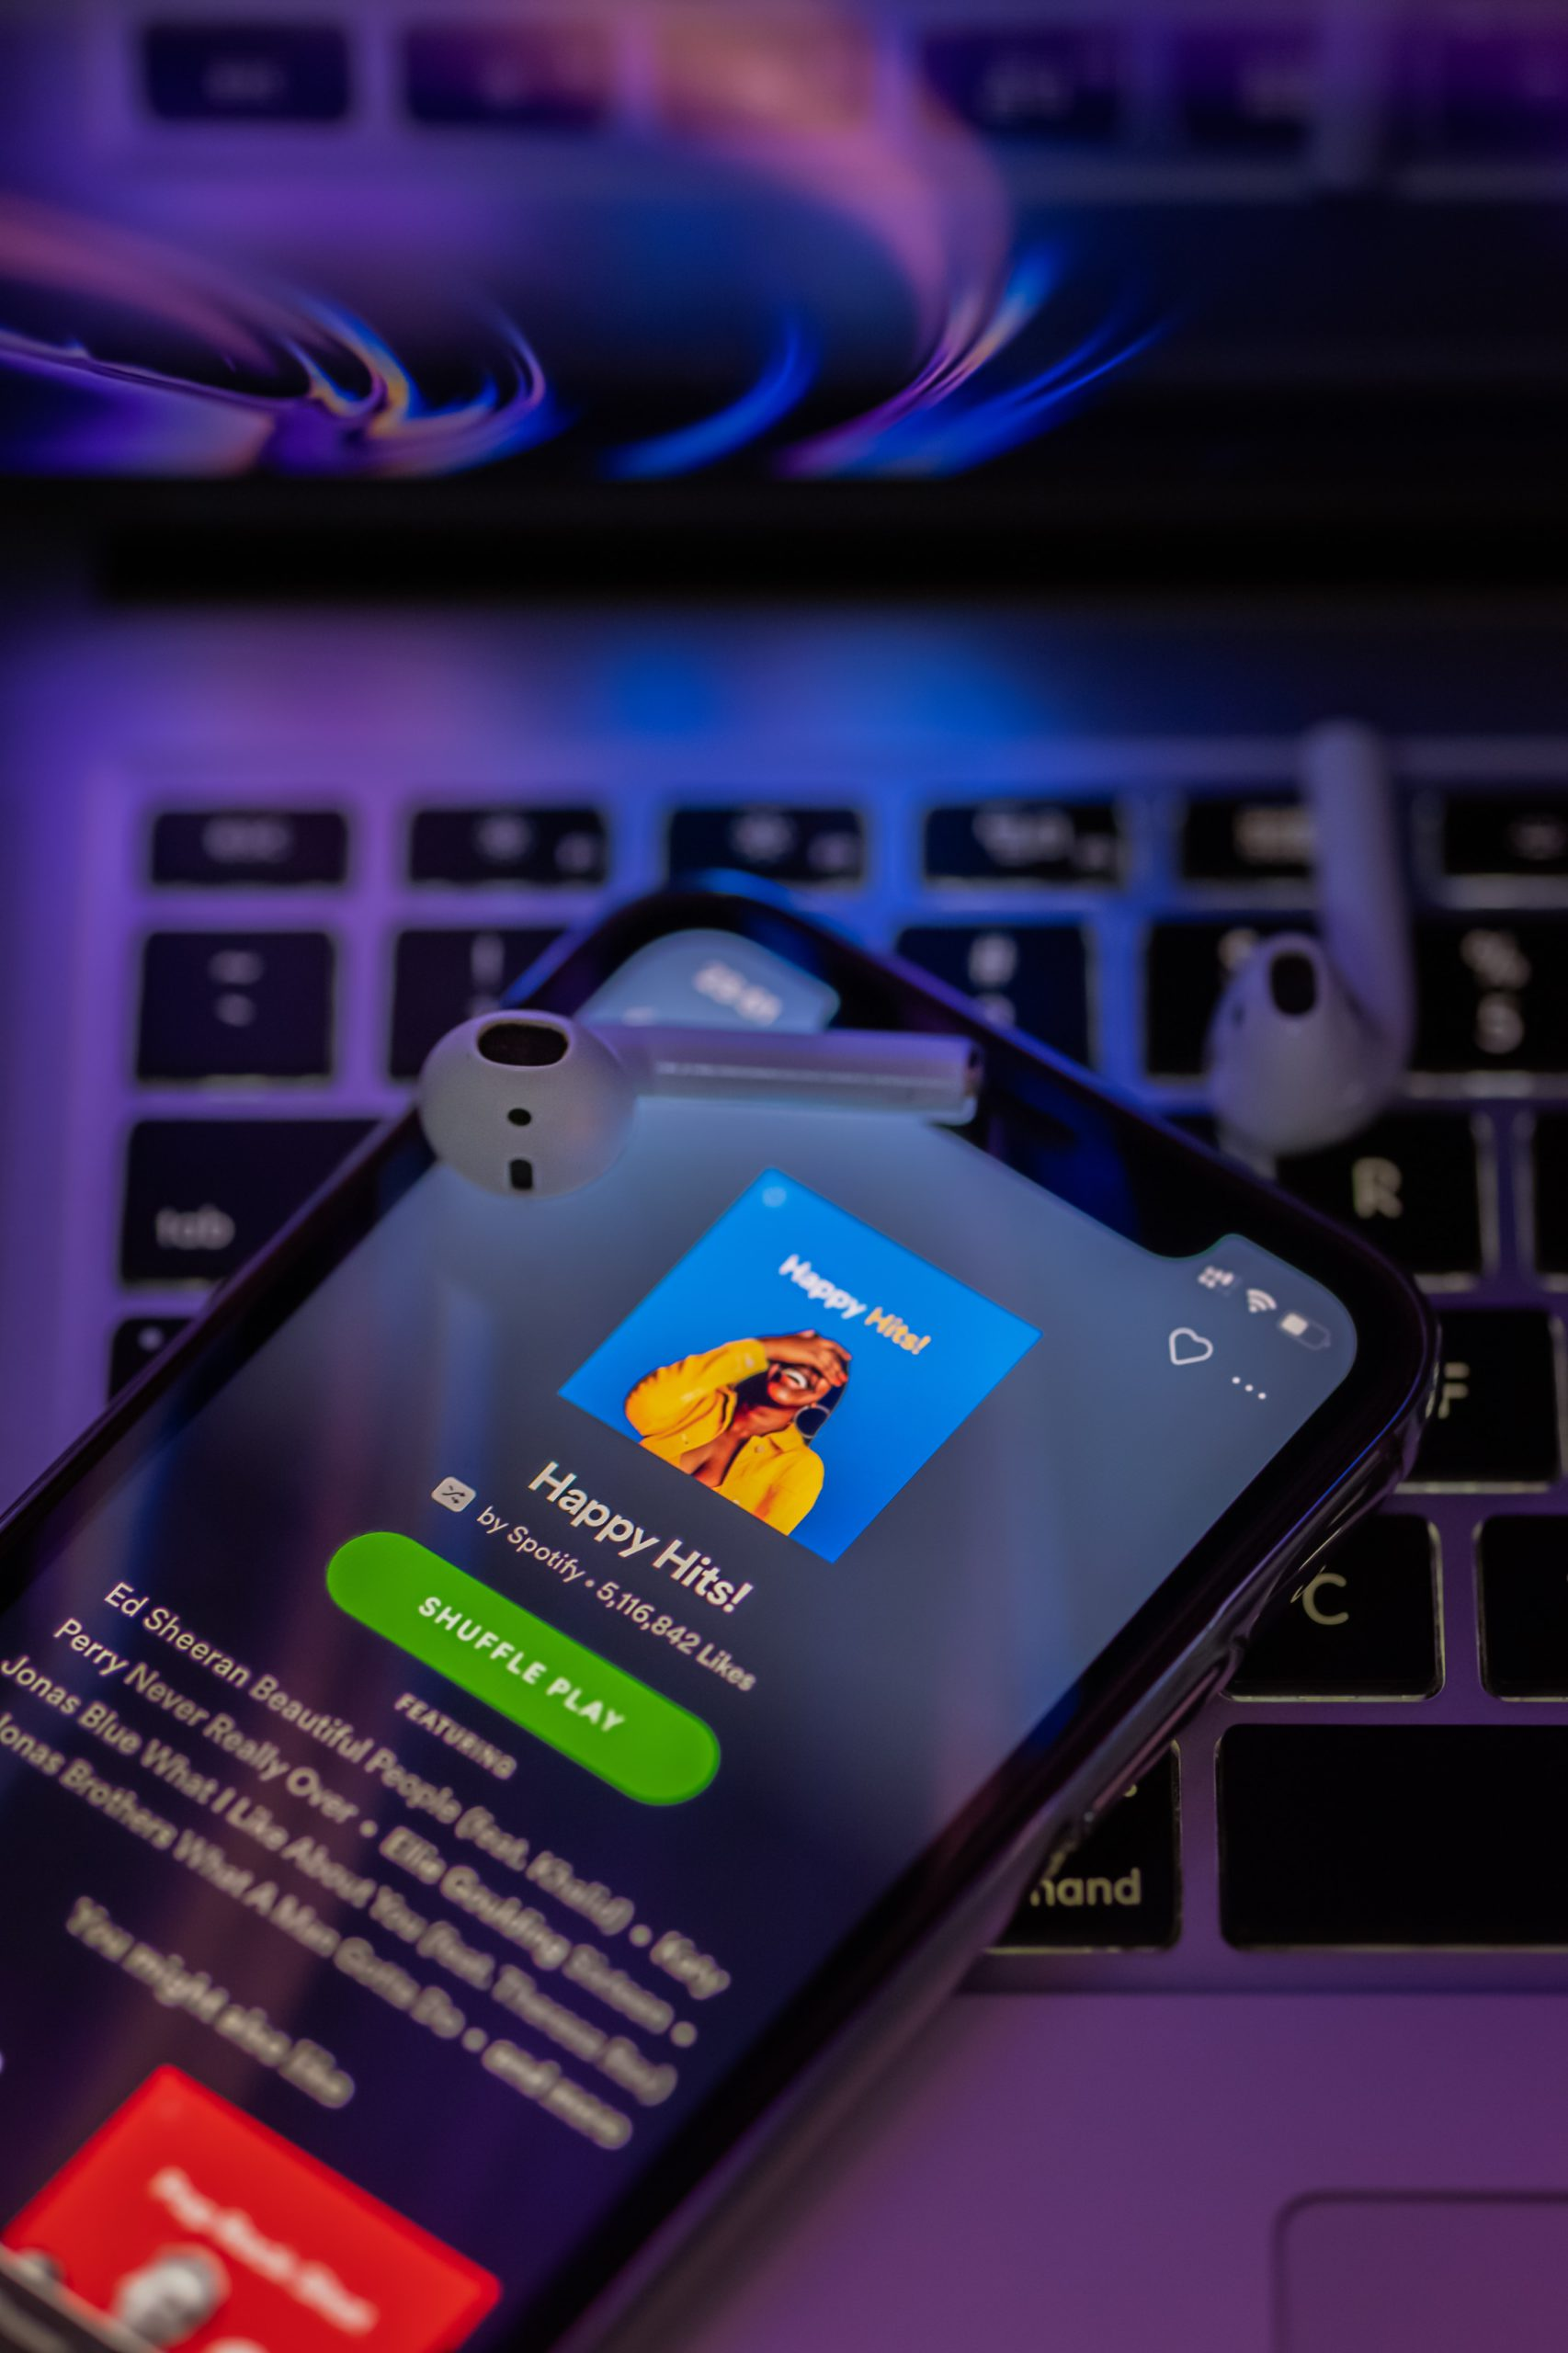 Spotify's Recommender system helps it personalize user experience